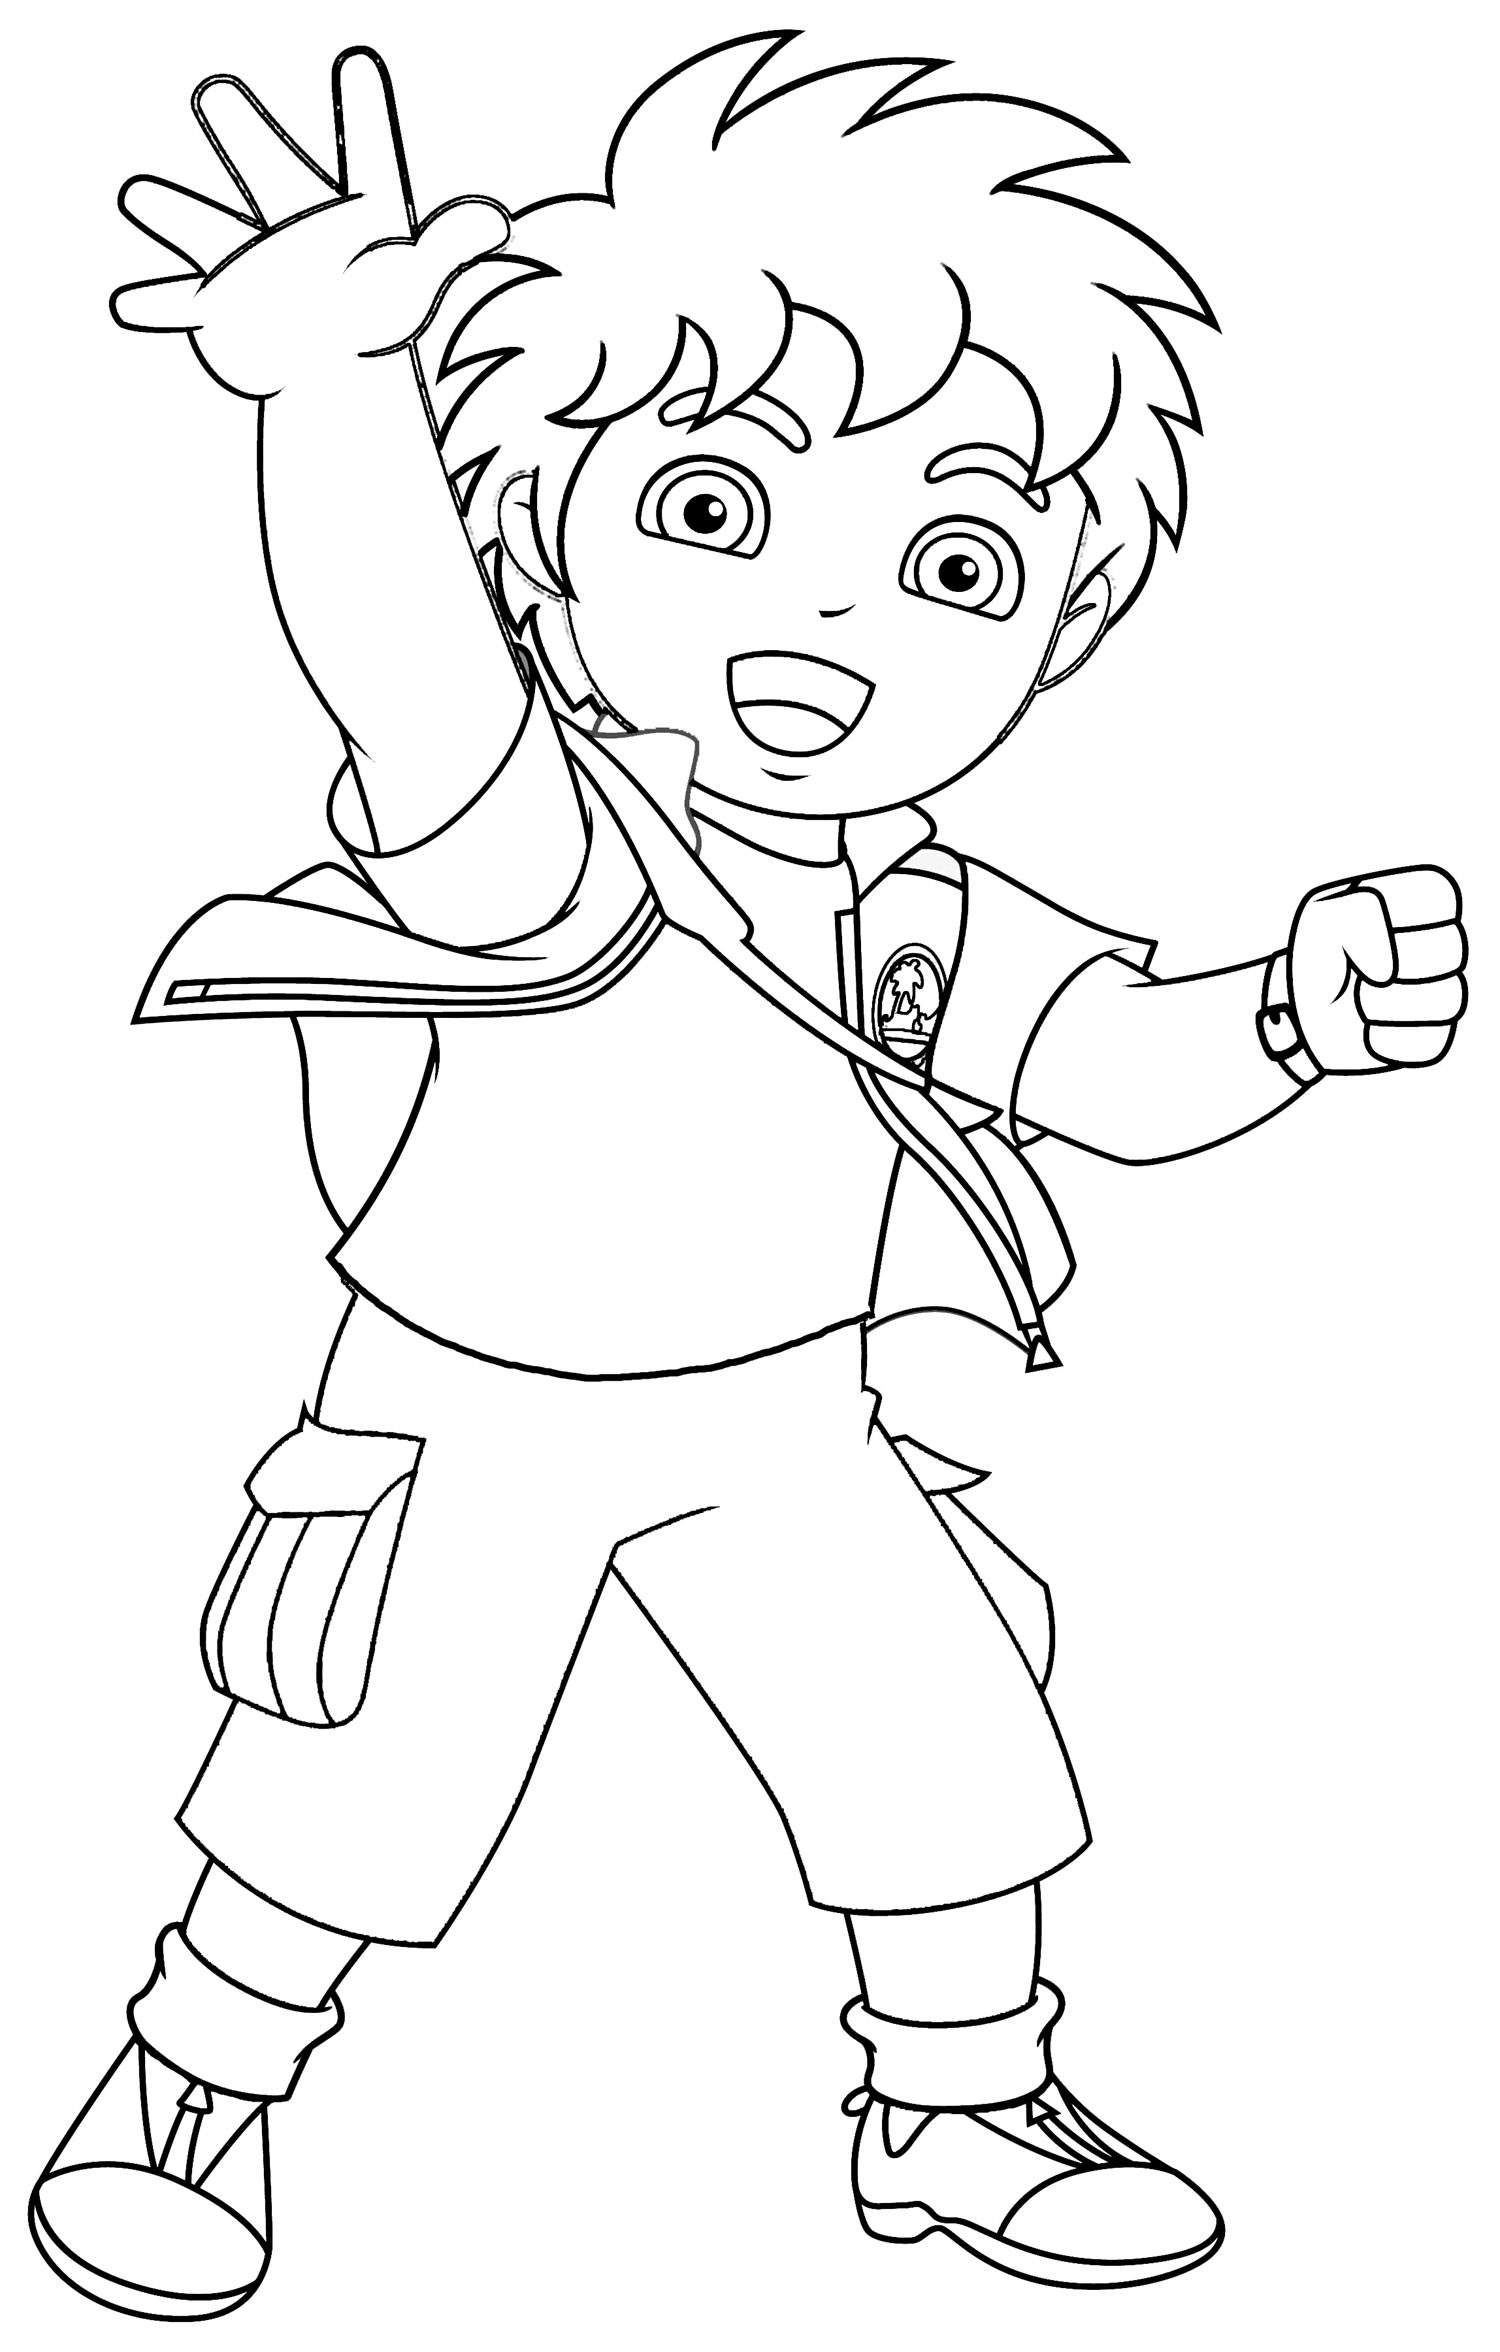 Download Nick Jr Coloring Pages 8